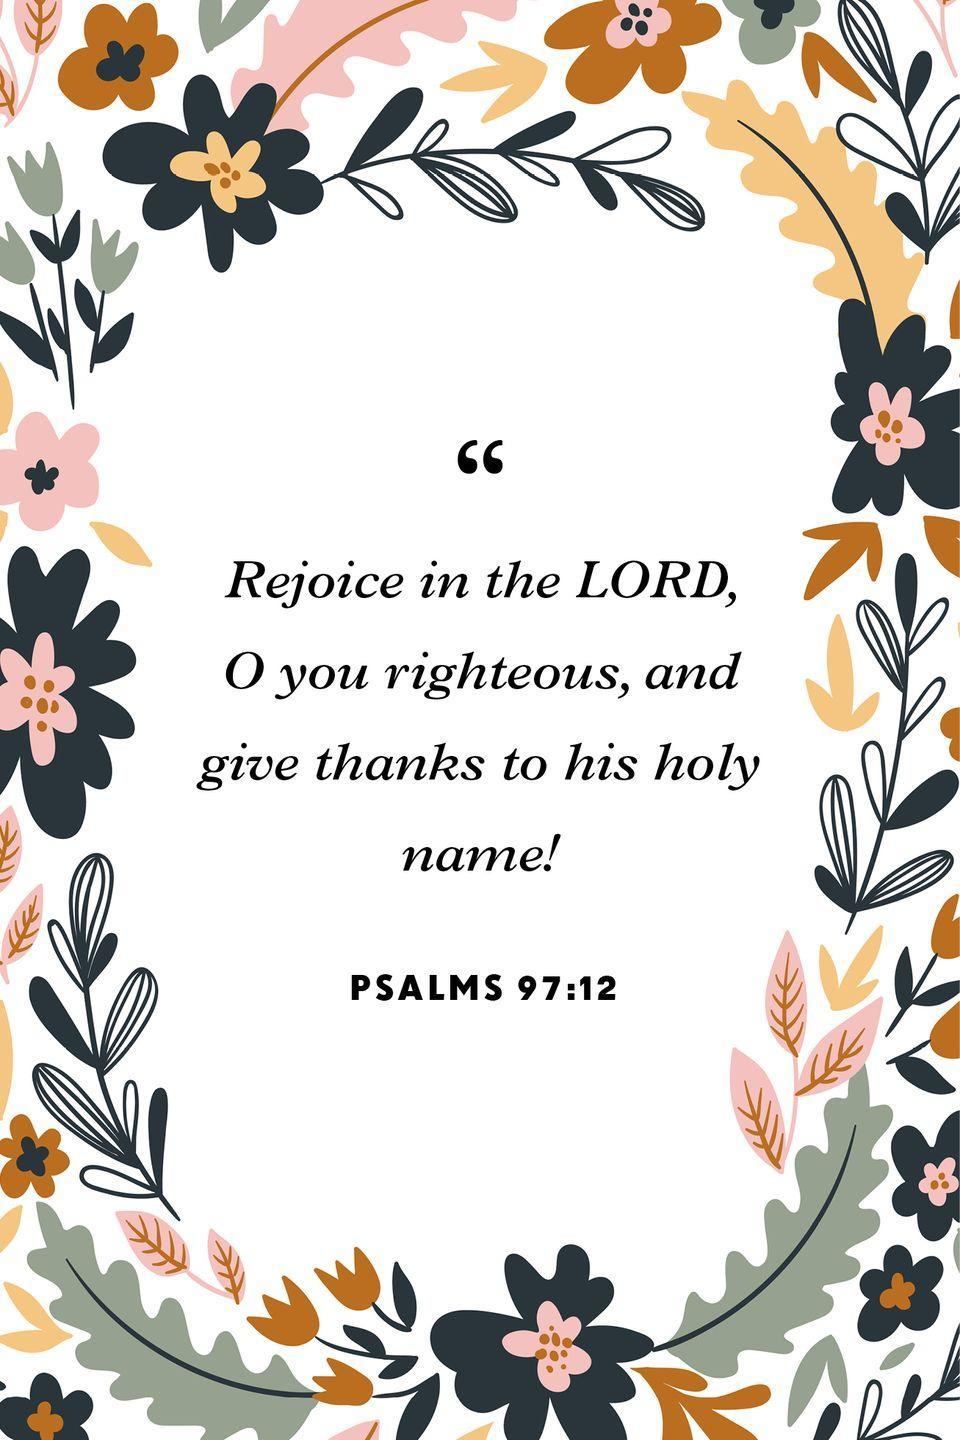 """<p>""""Rejoice in the LORD, O you righteous,<br>and give thanks to his holy name!""""</p>"""